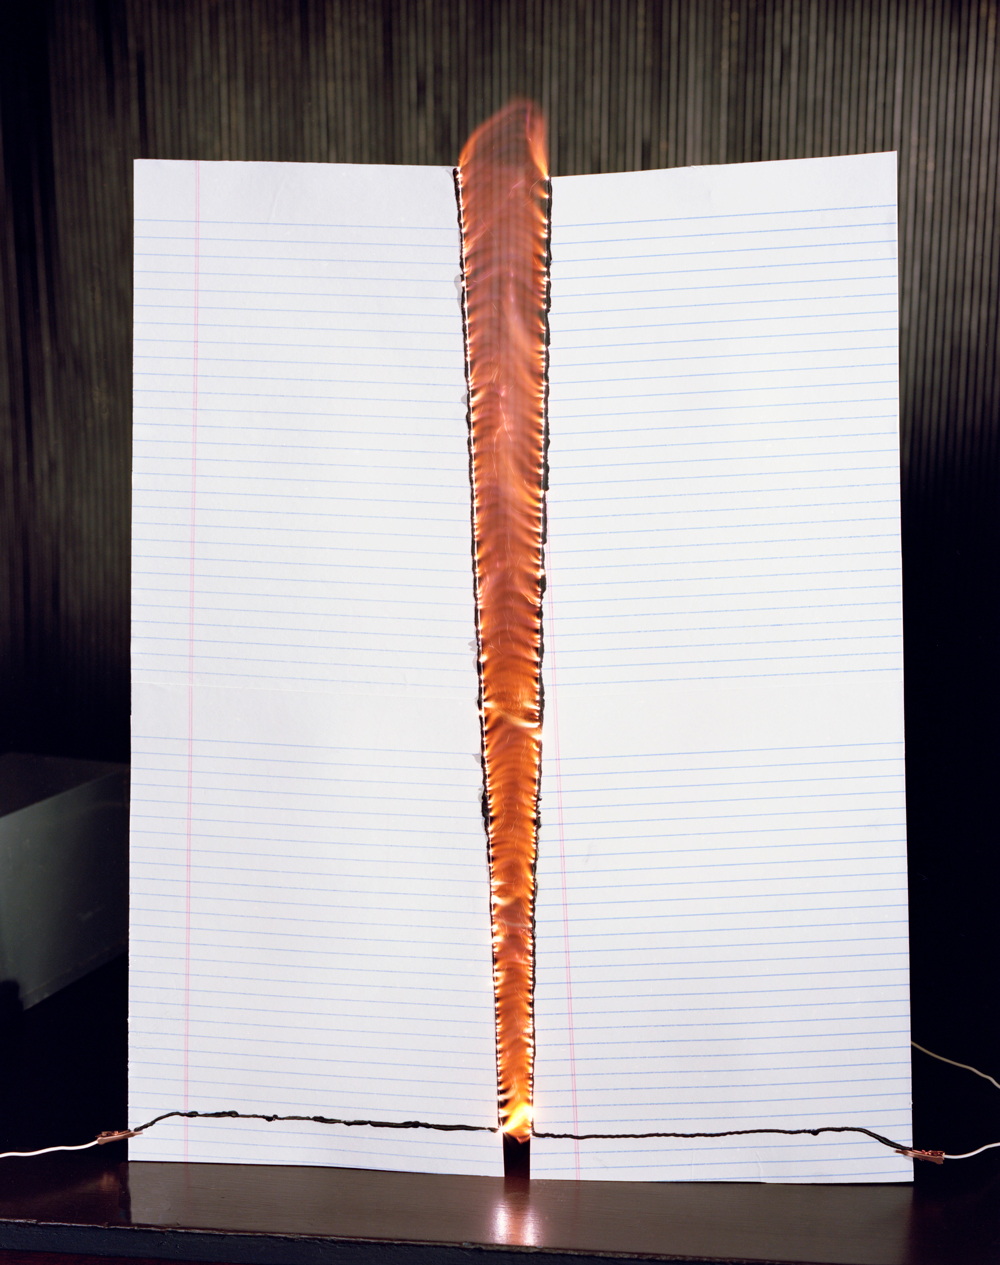 David Goldes, Jacob's Ladder on Lined Paper, 2013,